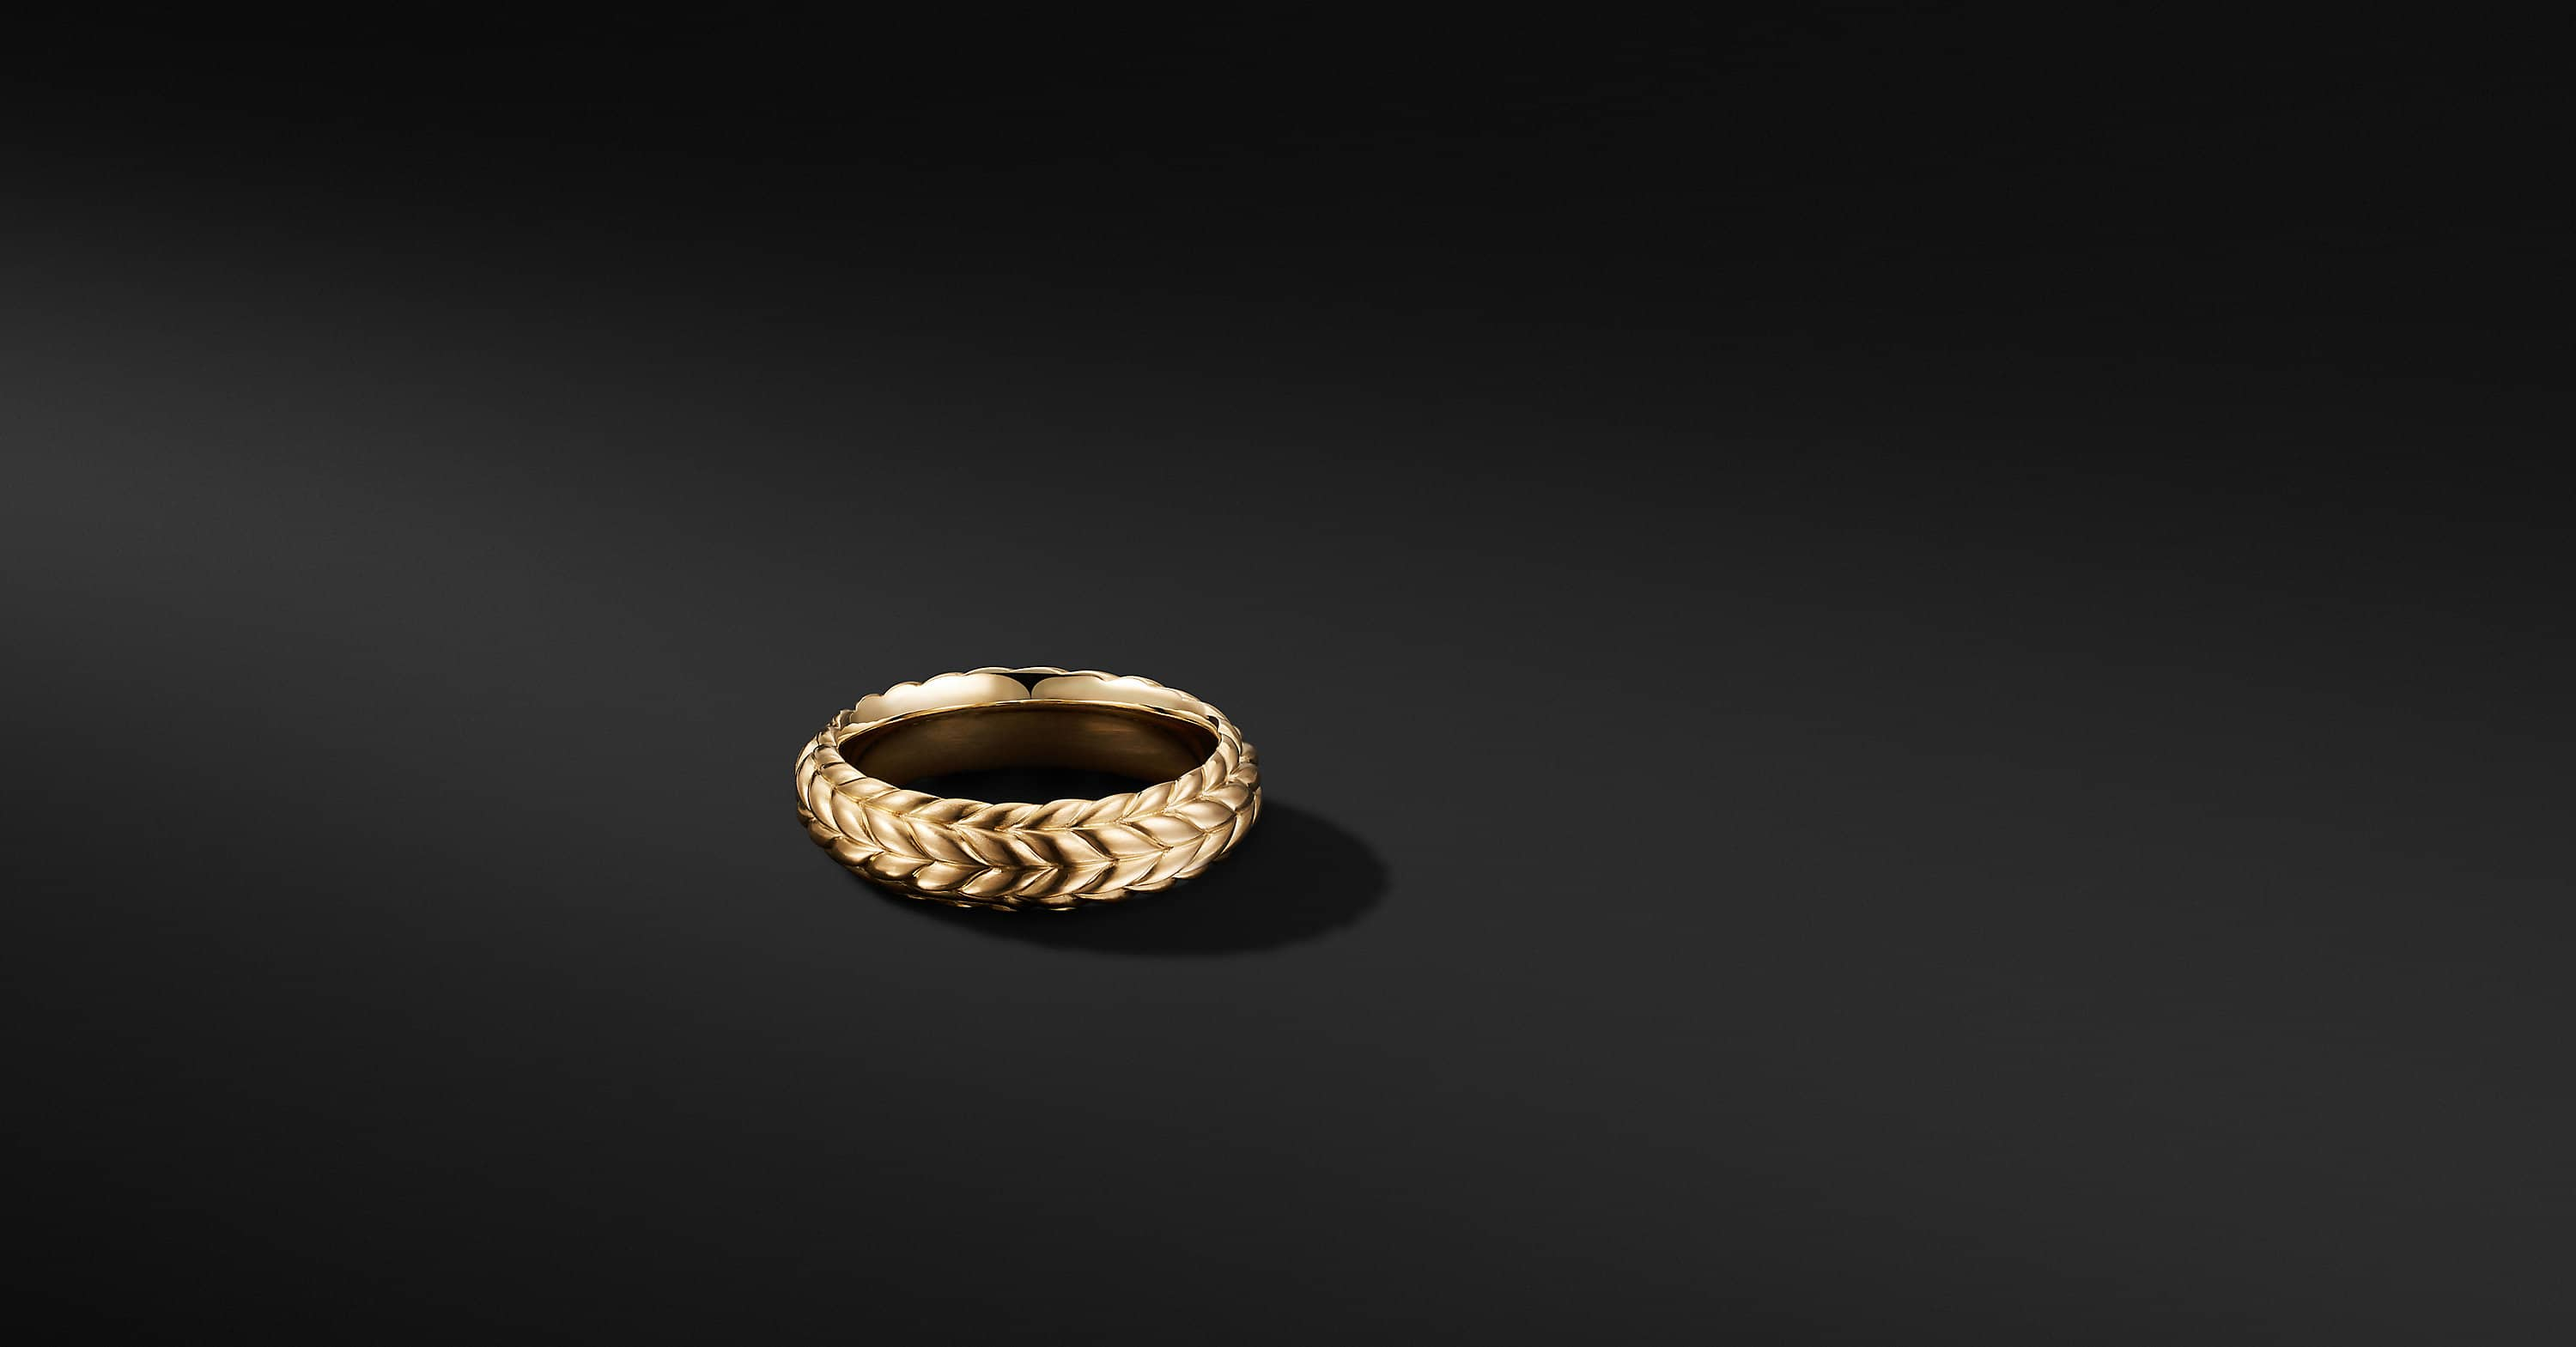 Chevron Beveled Band Ring in 18K Yellow Gold, 6mm